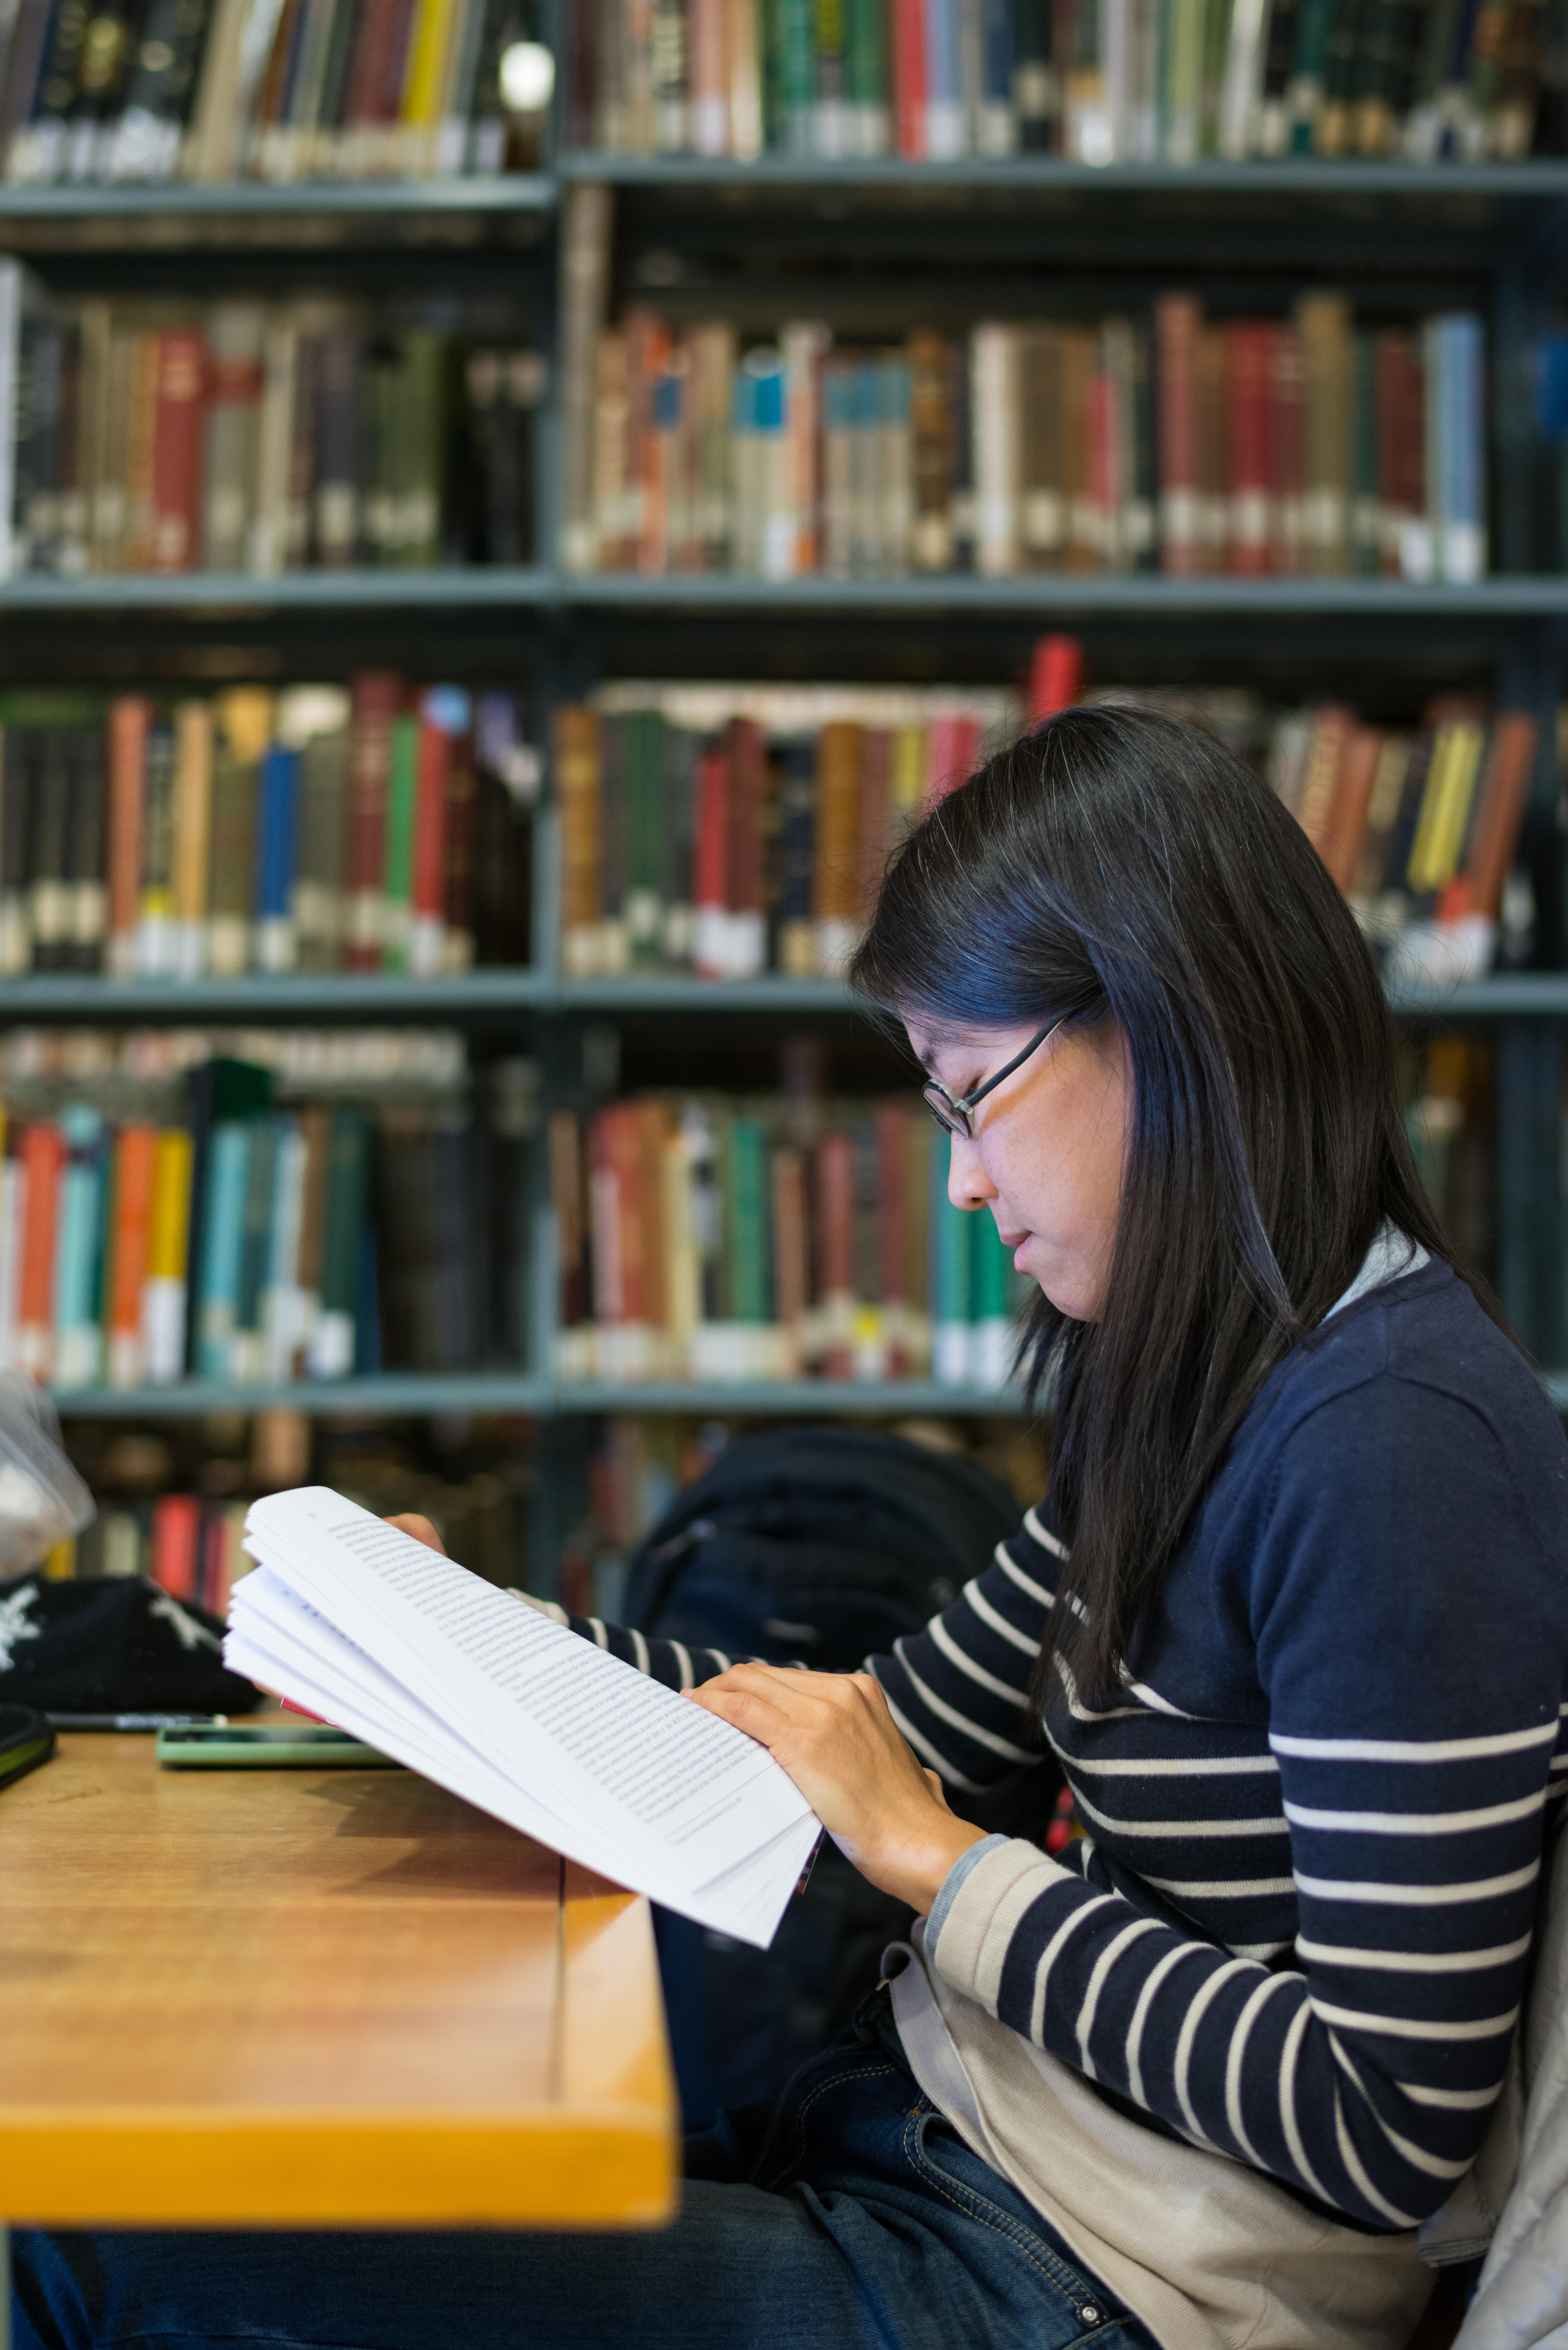 international-students-library-studying